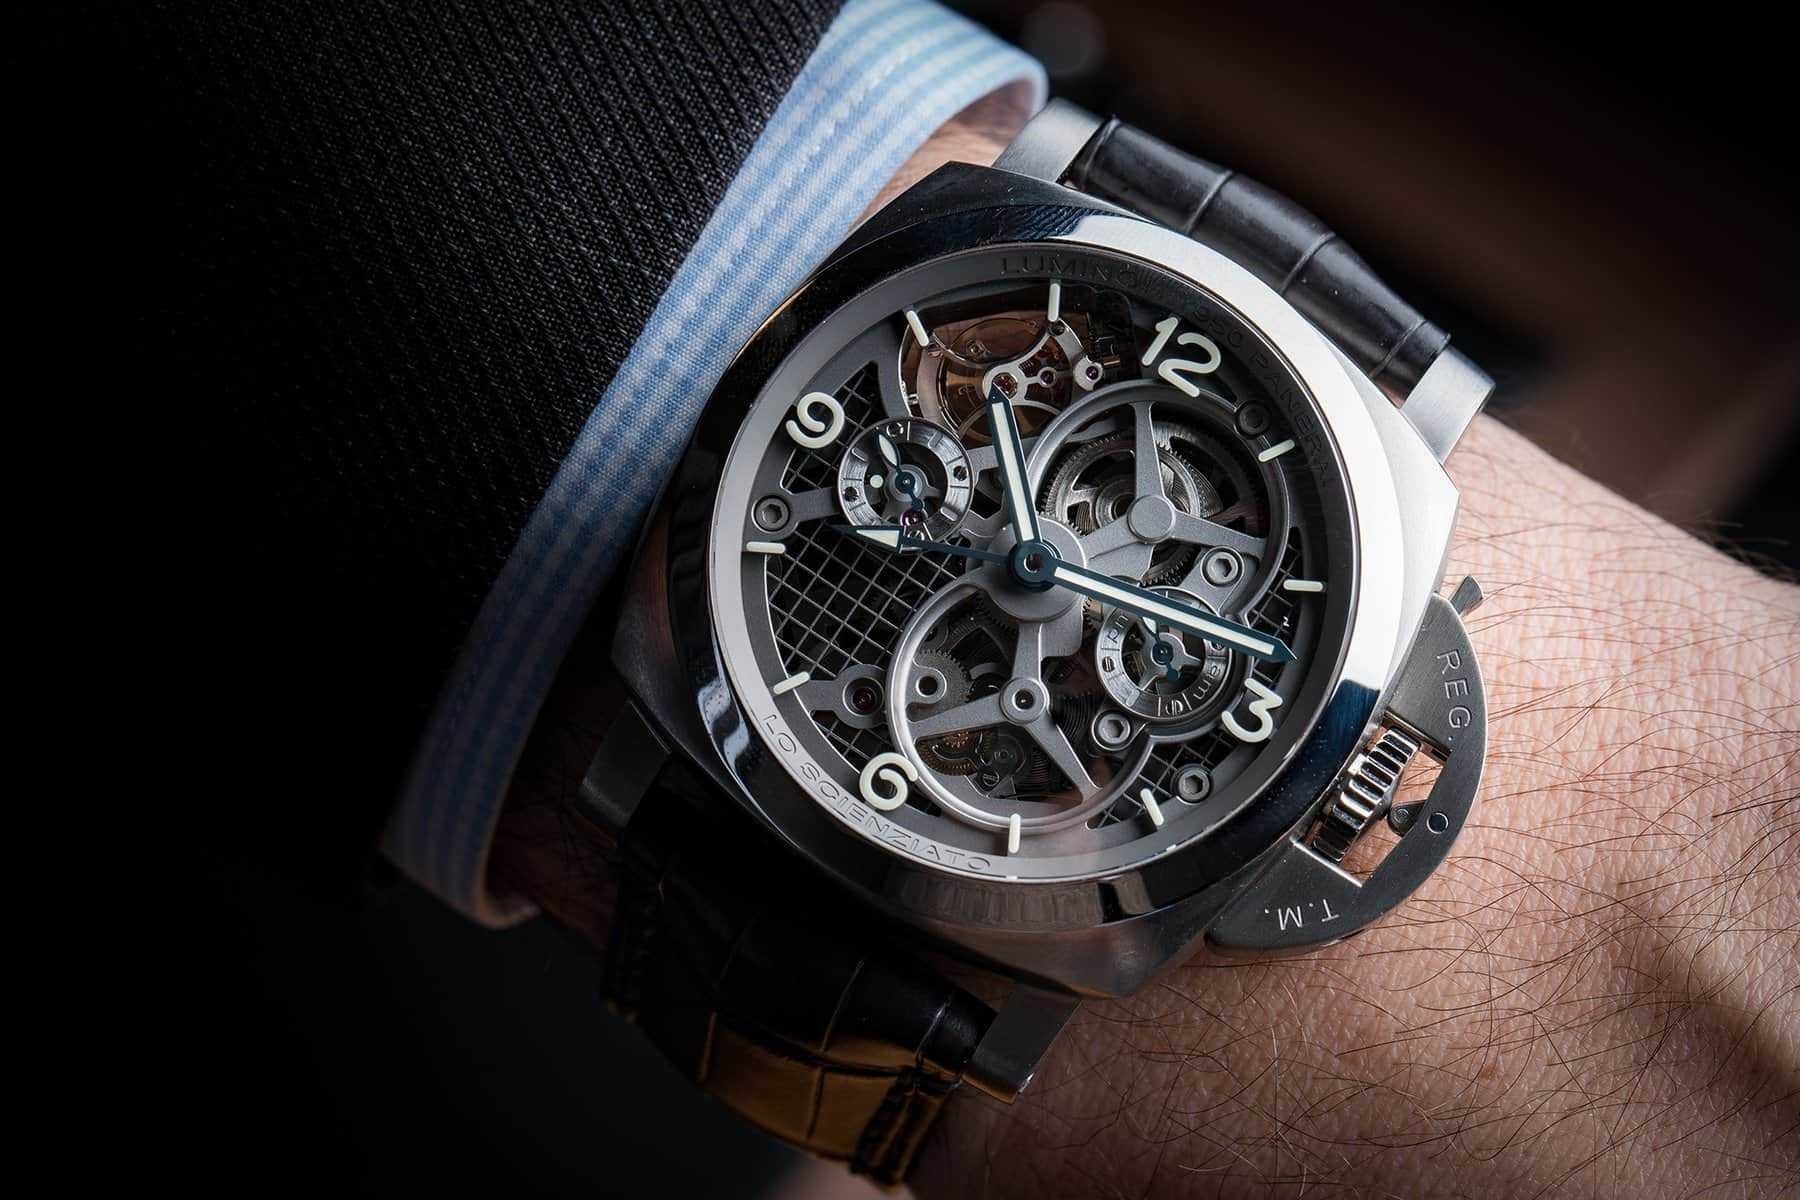 The Panerai Lo Scienziato Luminor 1950 Tourbillon GMT Titanio